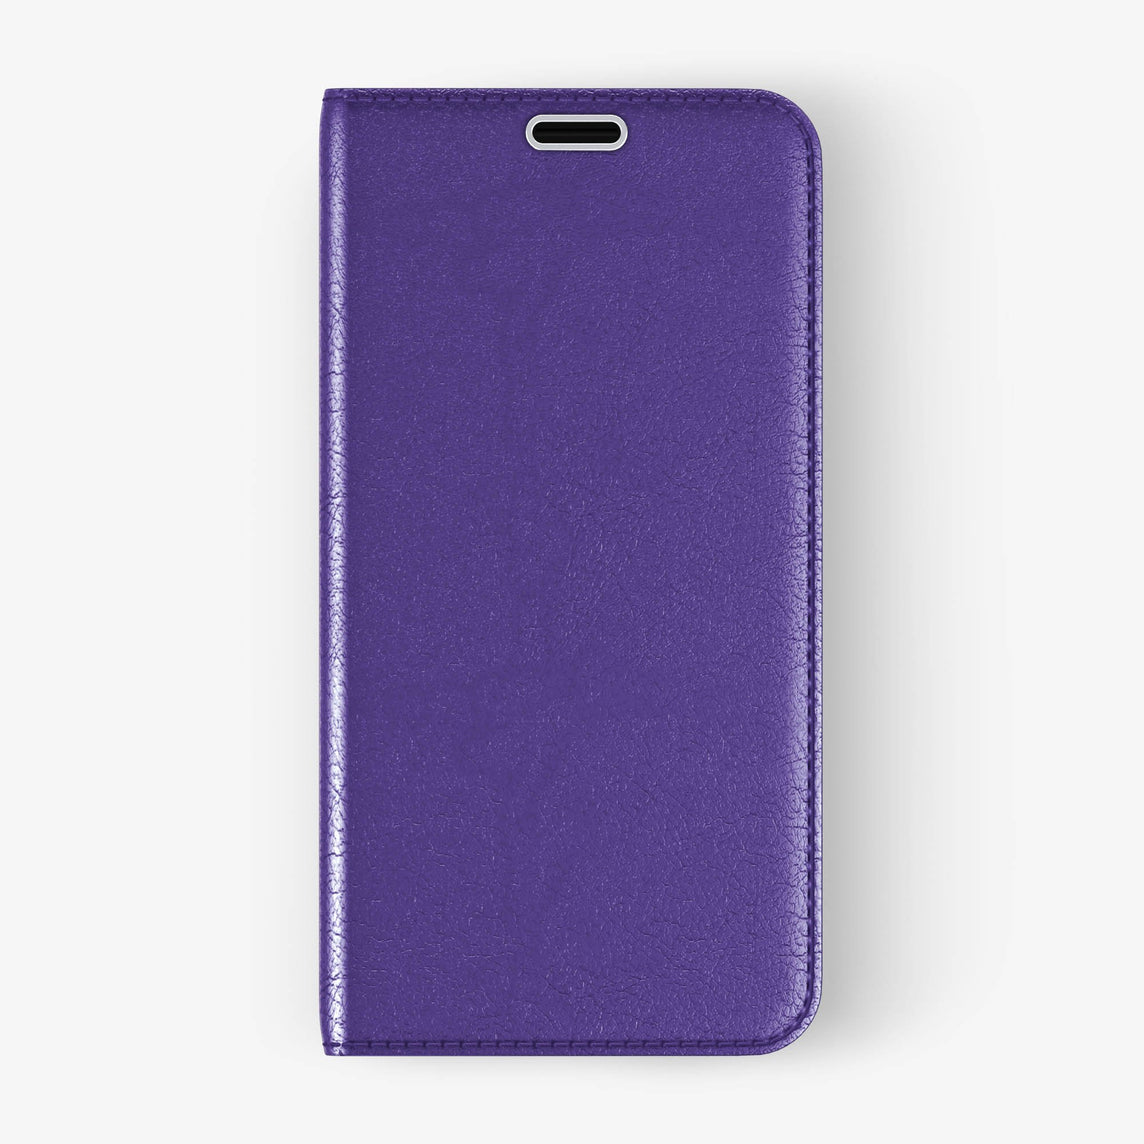 Calfskin Folio Case iPhone Xs Max | Violet - Stainless Steel